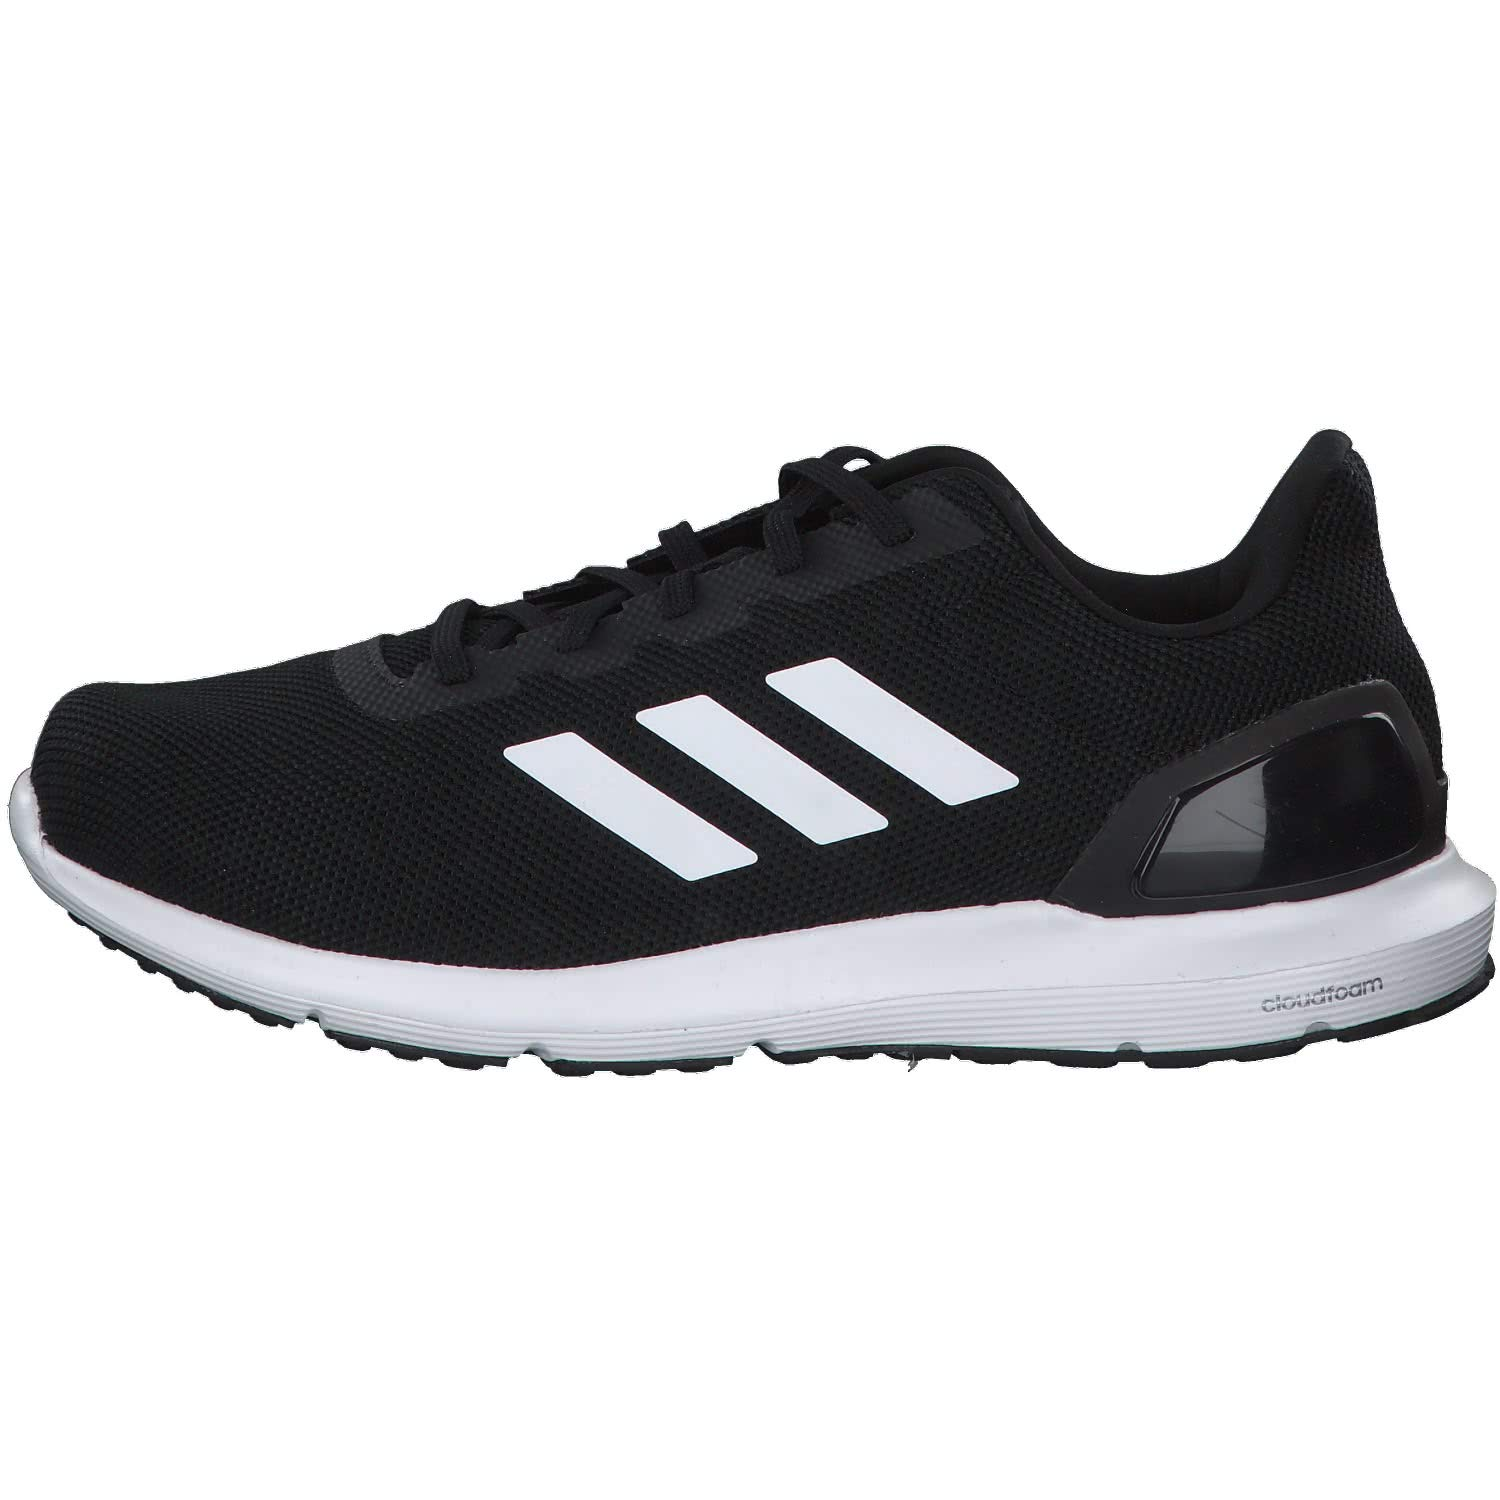 d289c0397 adidas Boys  Cosmic 2 Fitness Shoes